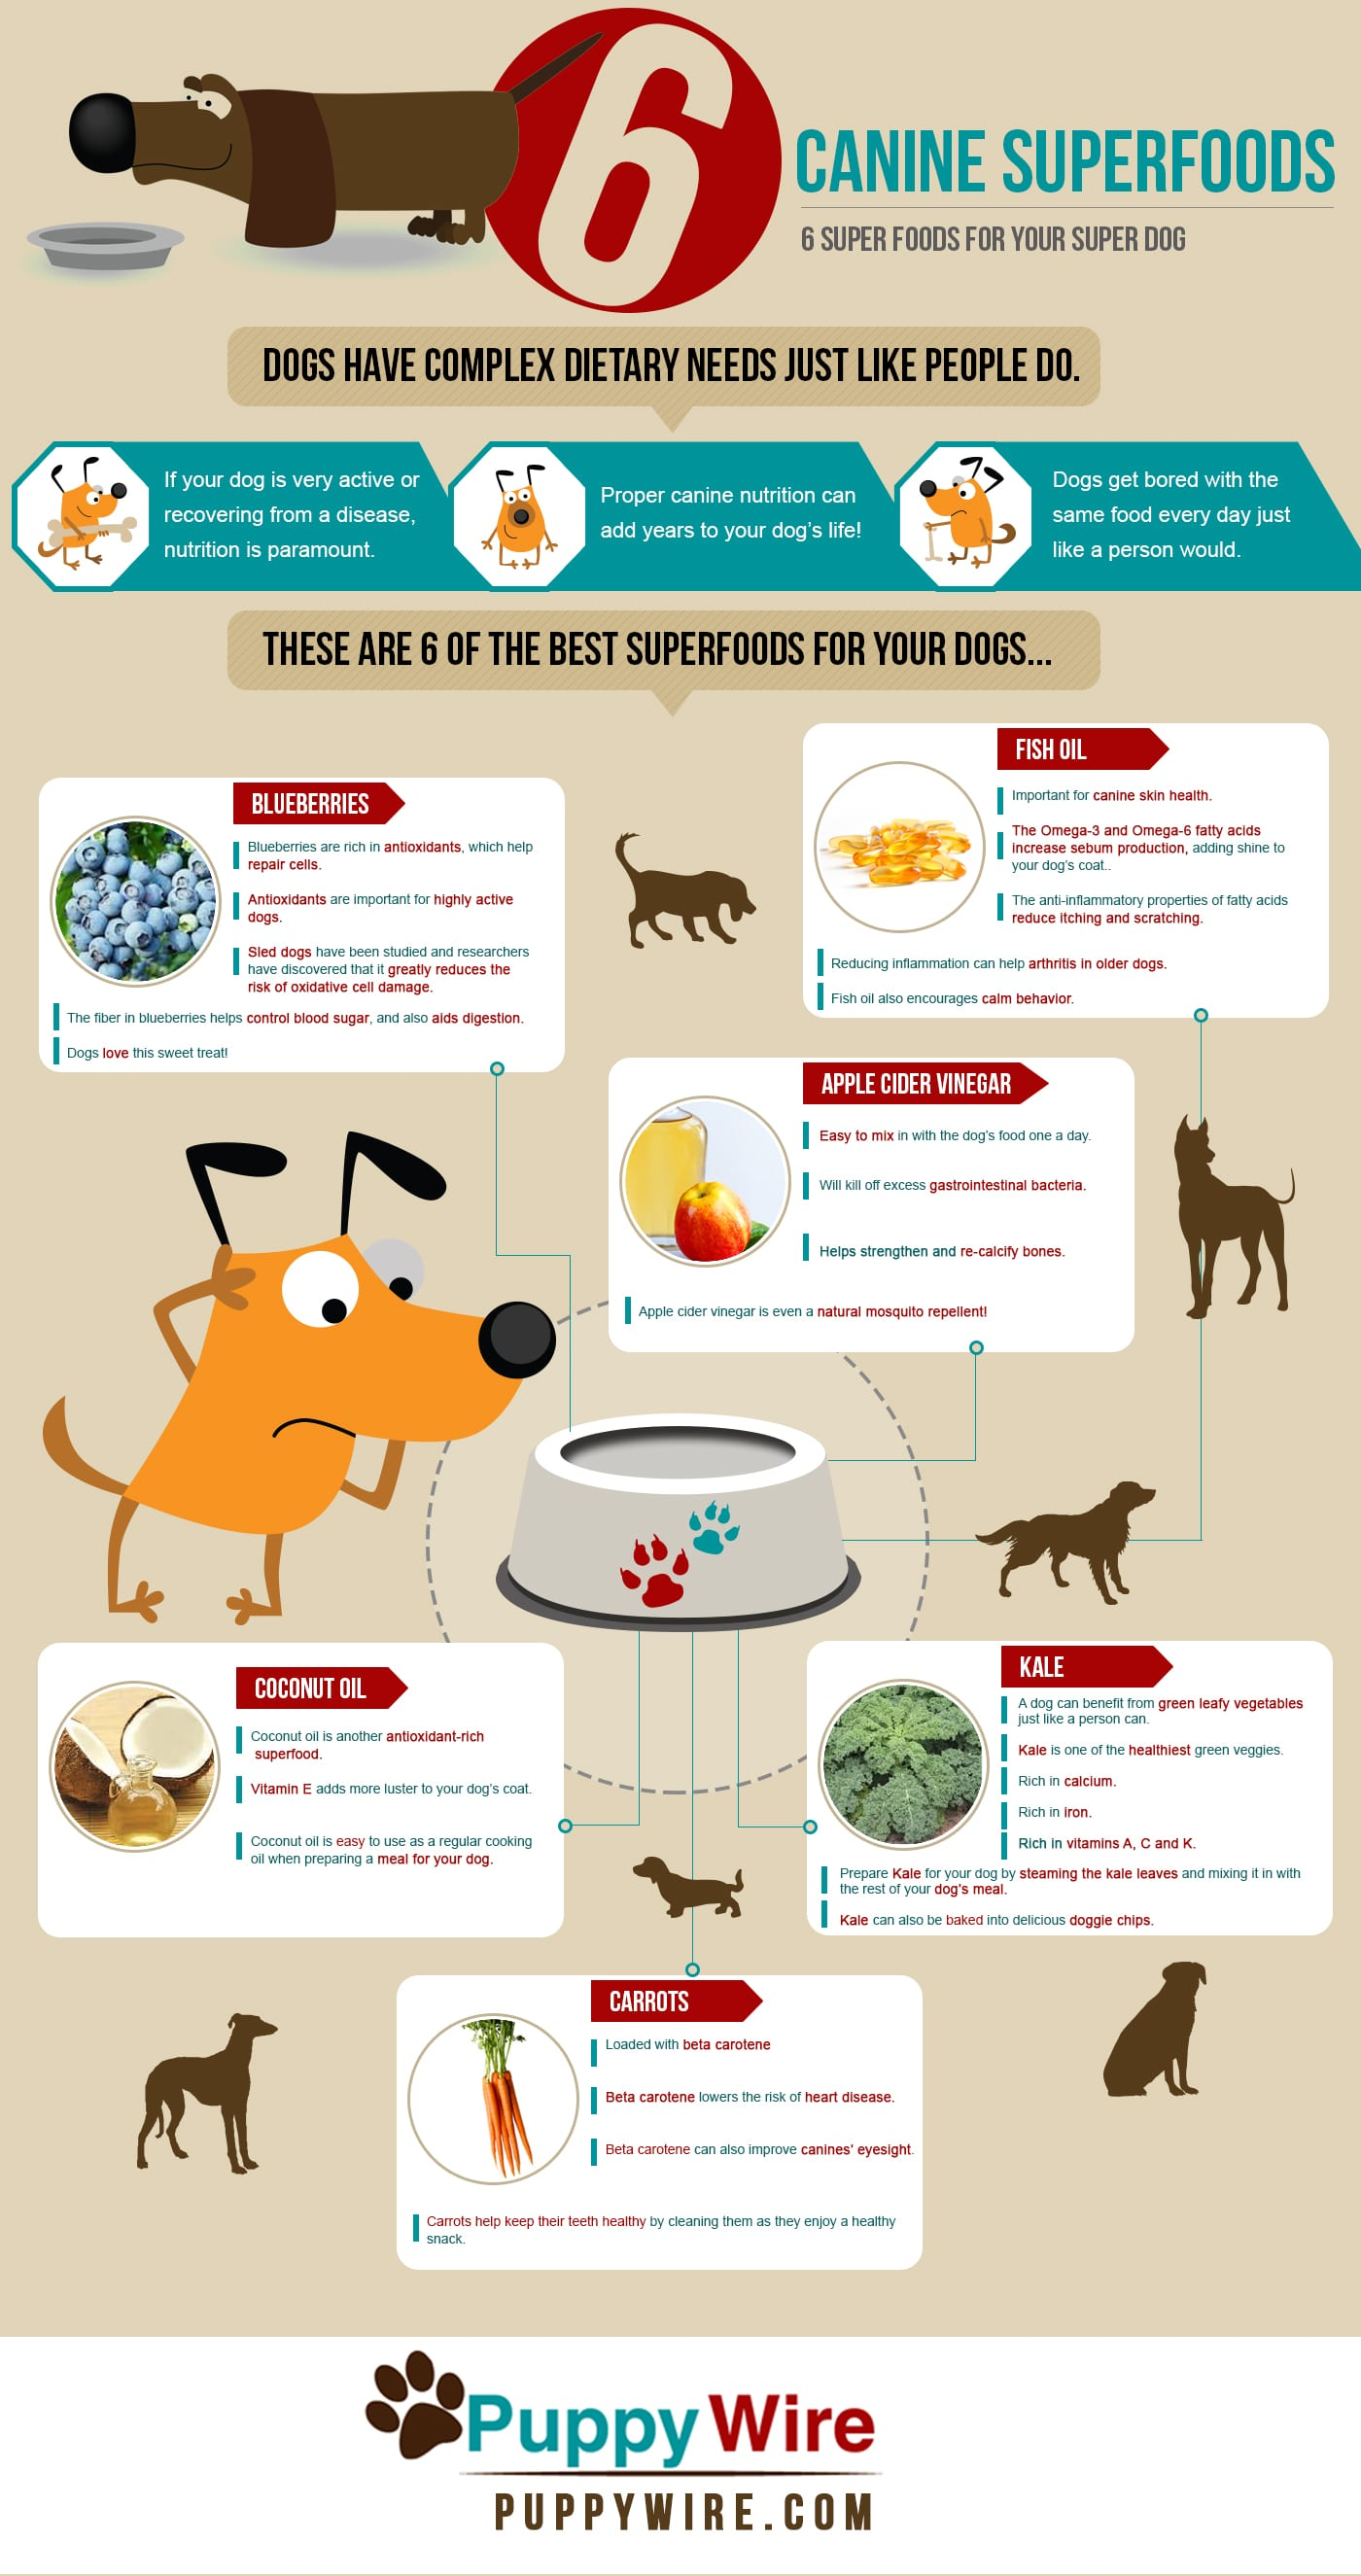 Superfoods For Dogs Top 6 For Your Super Dog